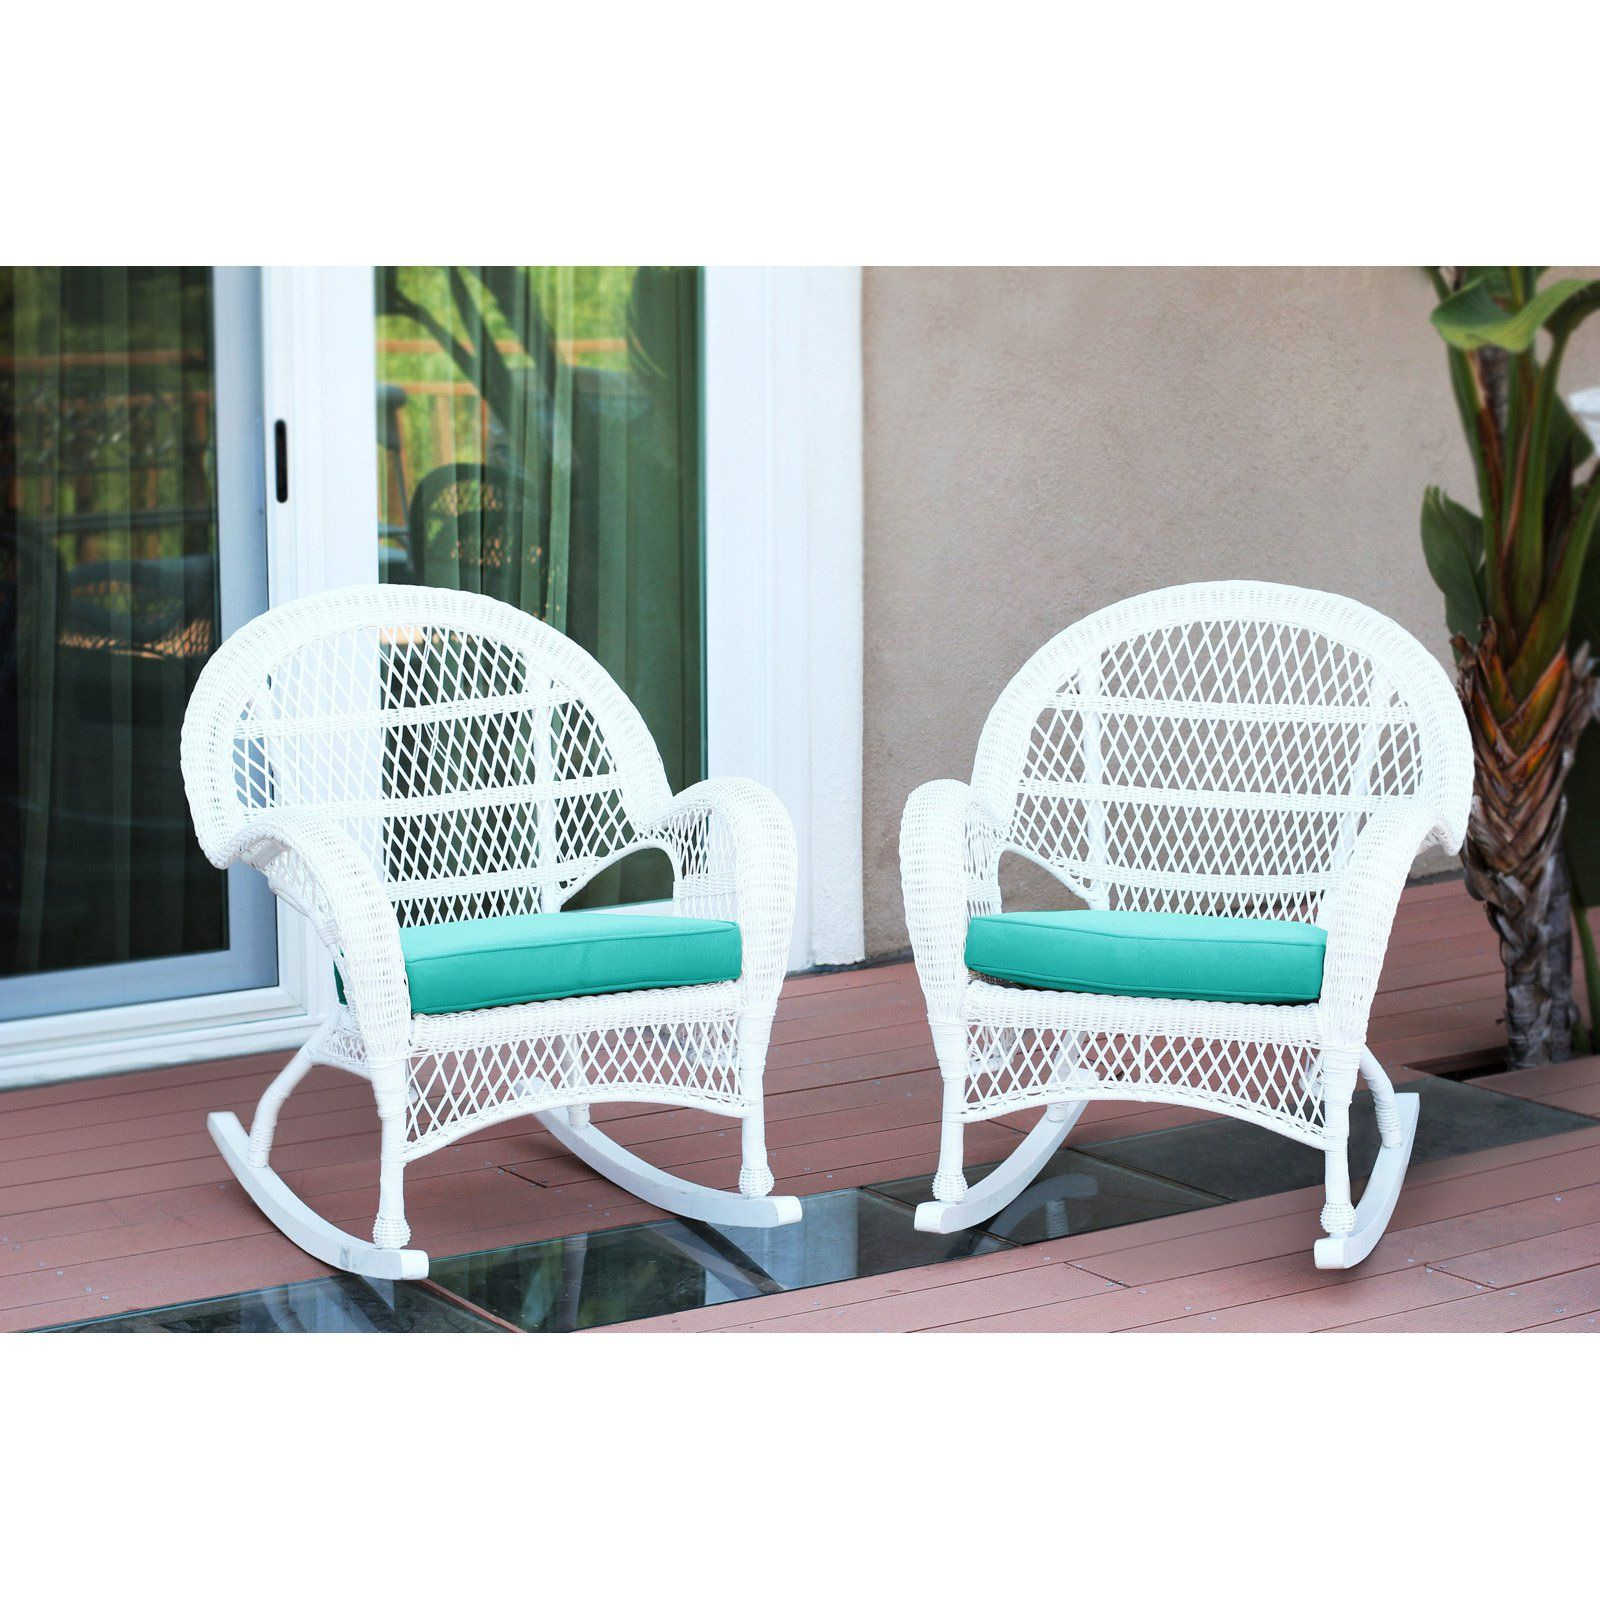 Outdoor Jeco Santa Maria Wicker Patio Rockers With Optional Cushion Set Of 2 Turquoise